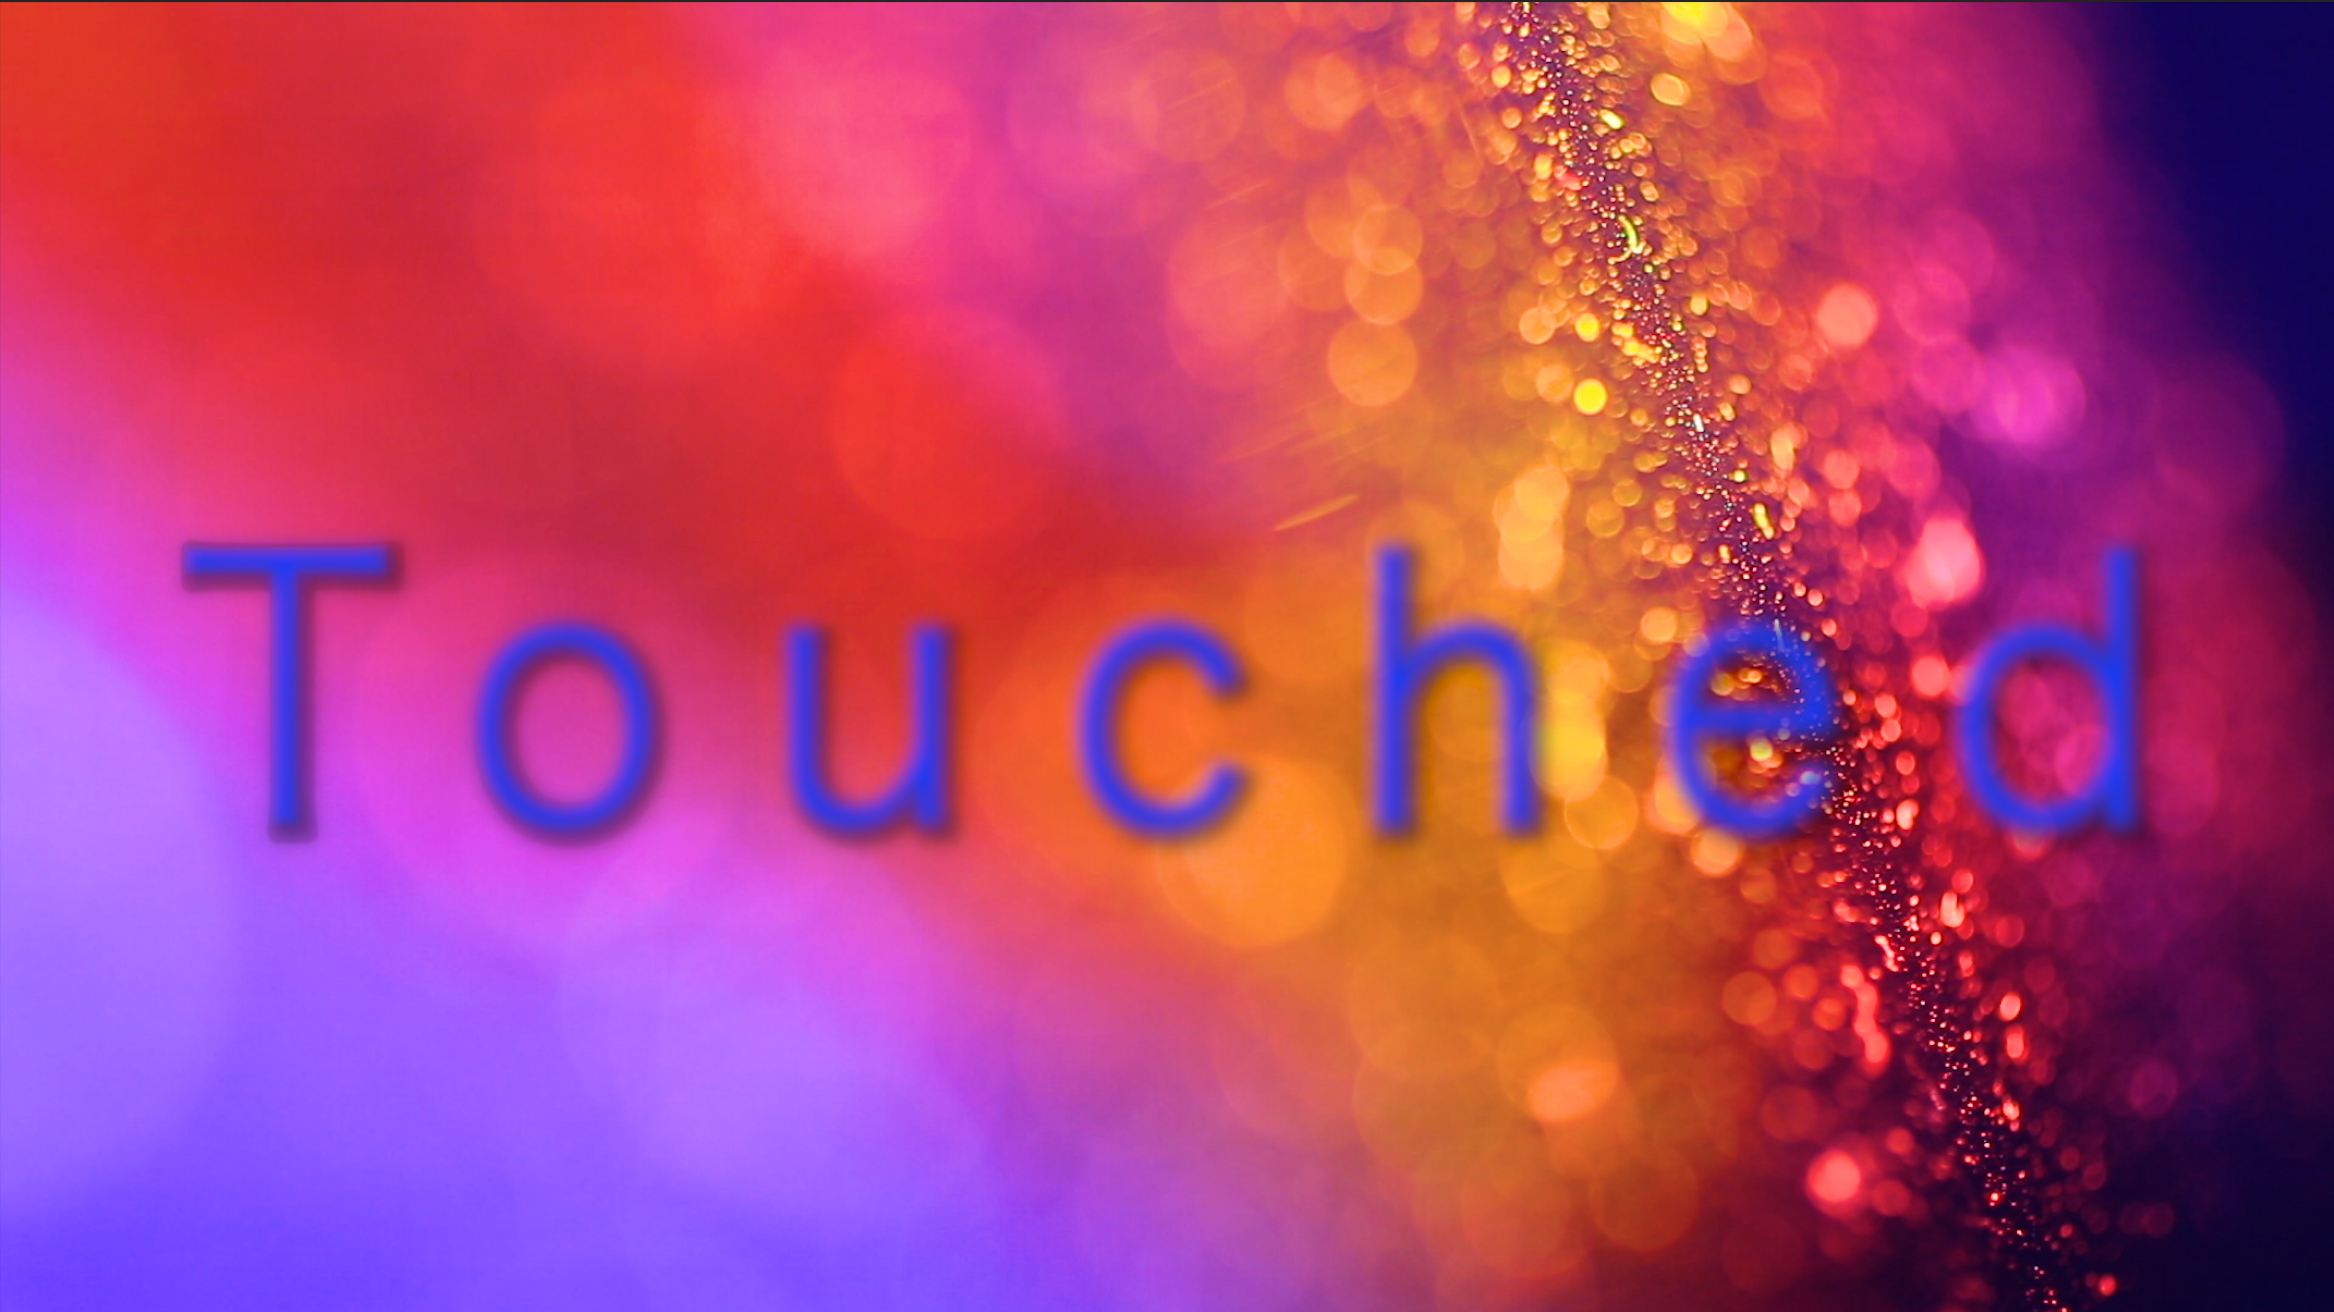 Touched - A love letter to the power of film